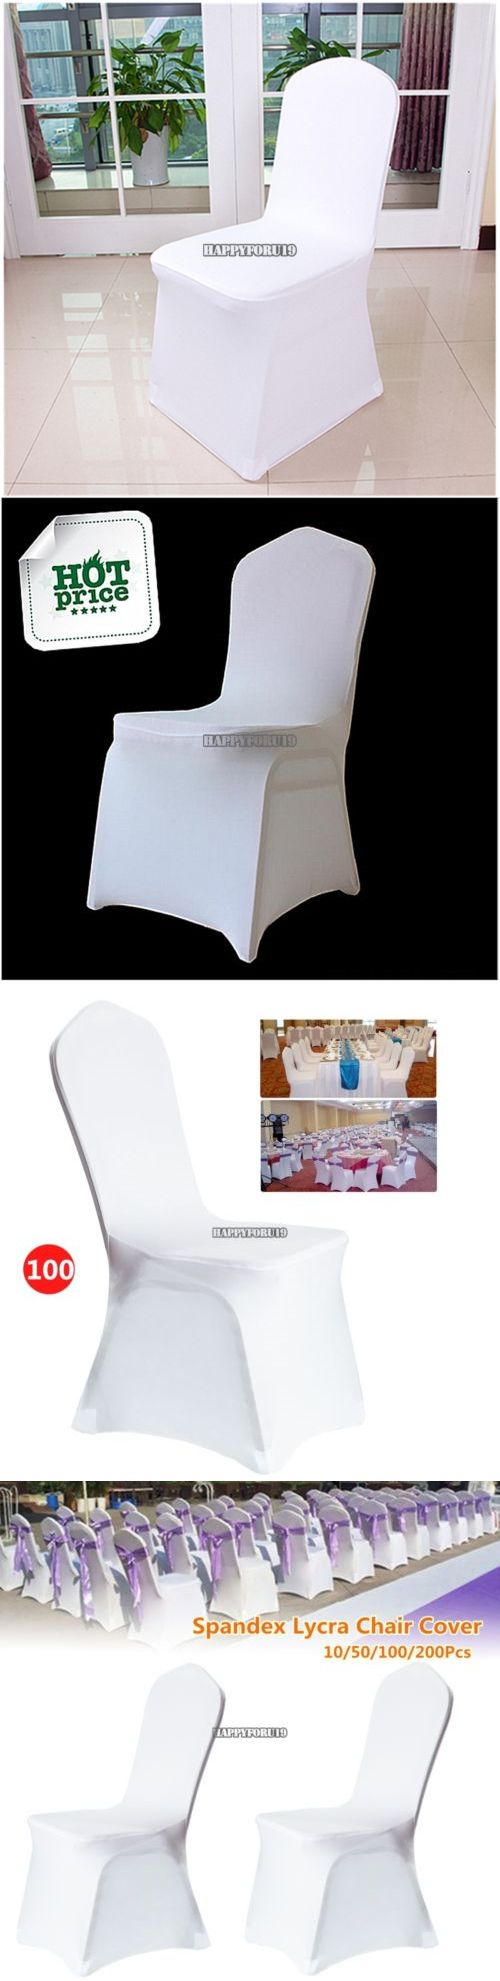 Affordable wedding chair decorations - Venue Decorations 102430 100pcs White Spandex Chair Covers For Wedding Banquet Party Ceremony Use Hfor